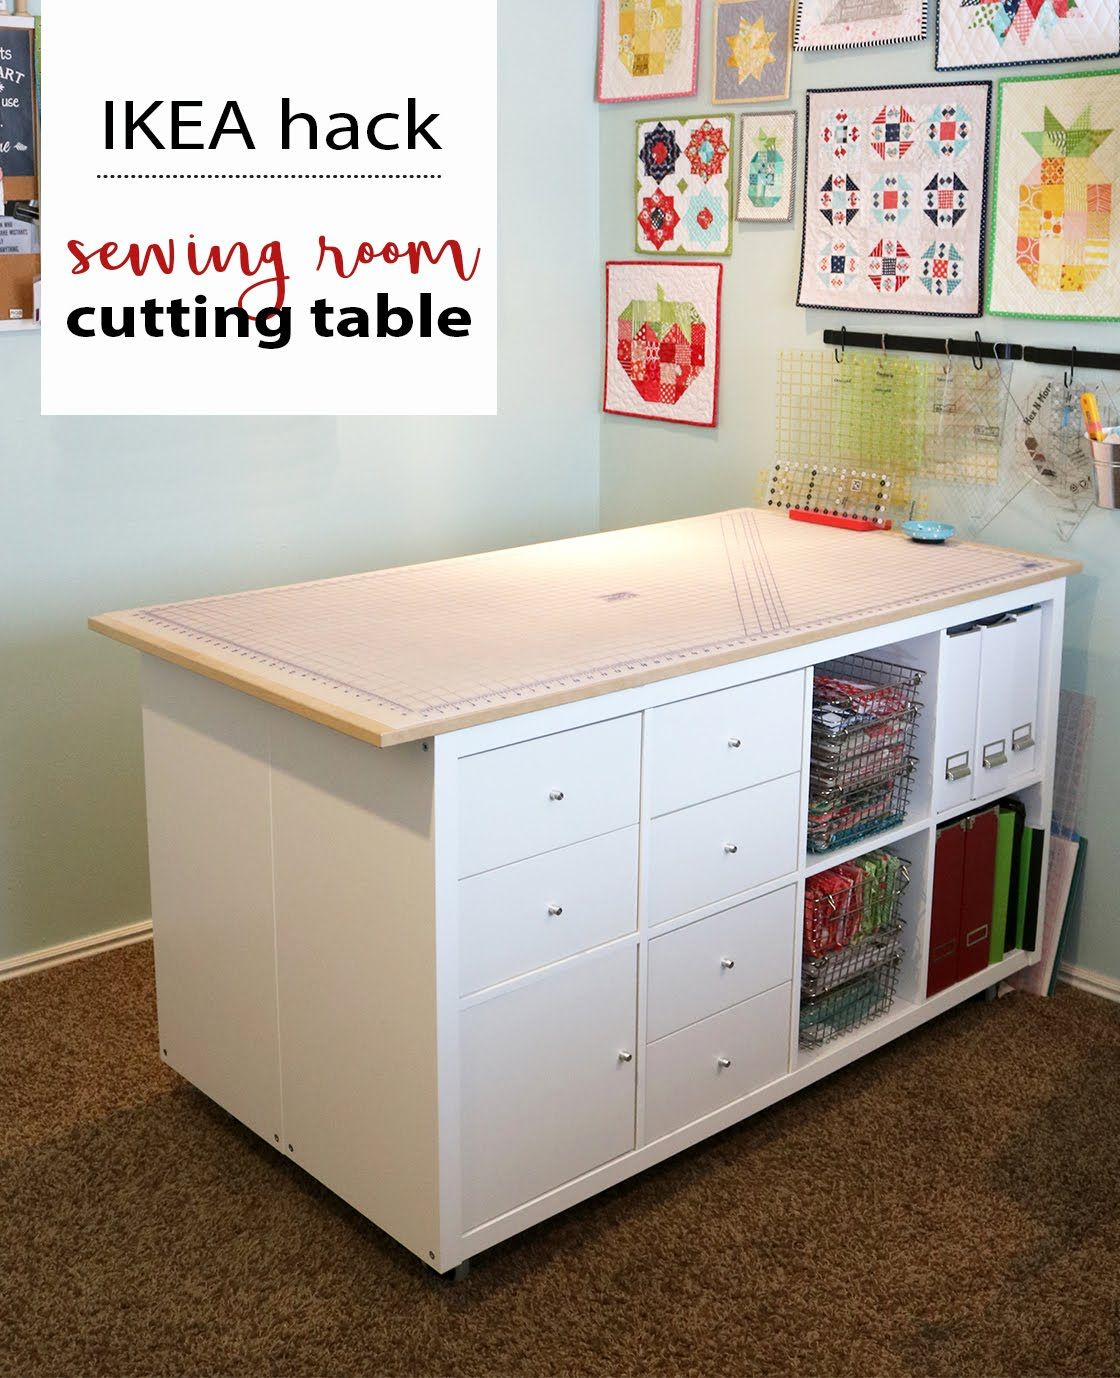 diy sewing room cutting table ikea hack. Black Bedroom Furniture Sets. Home Design Ideas